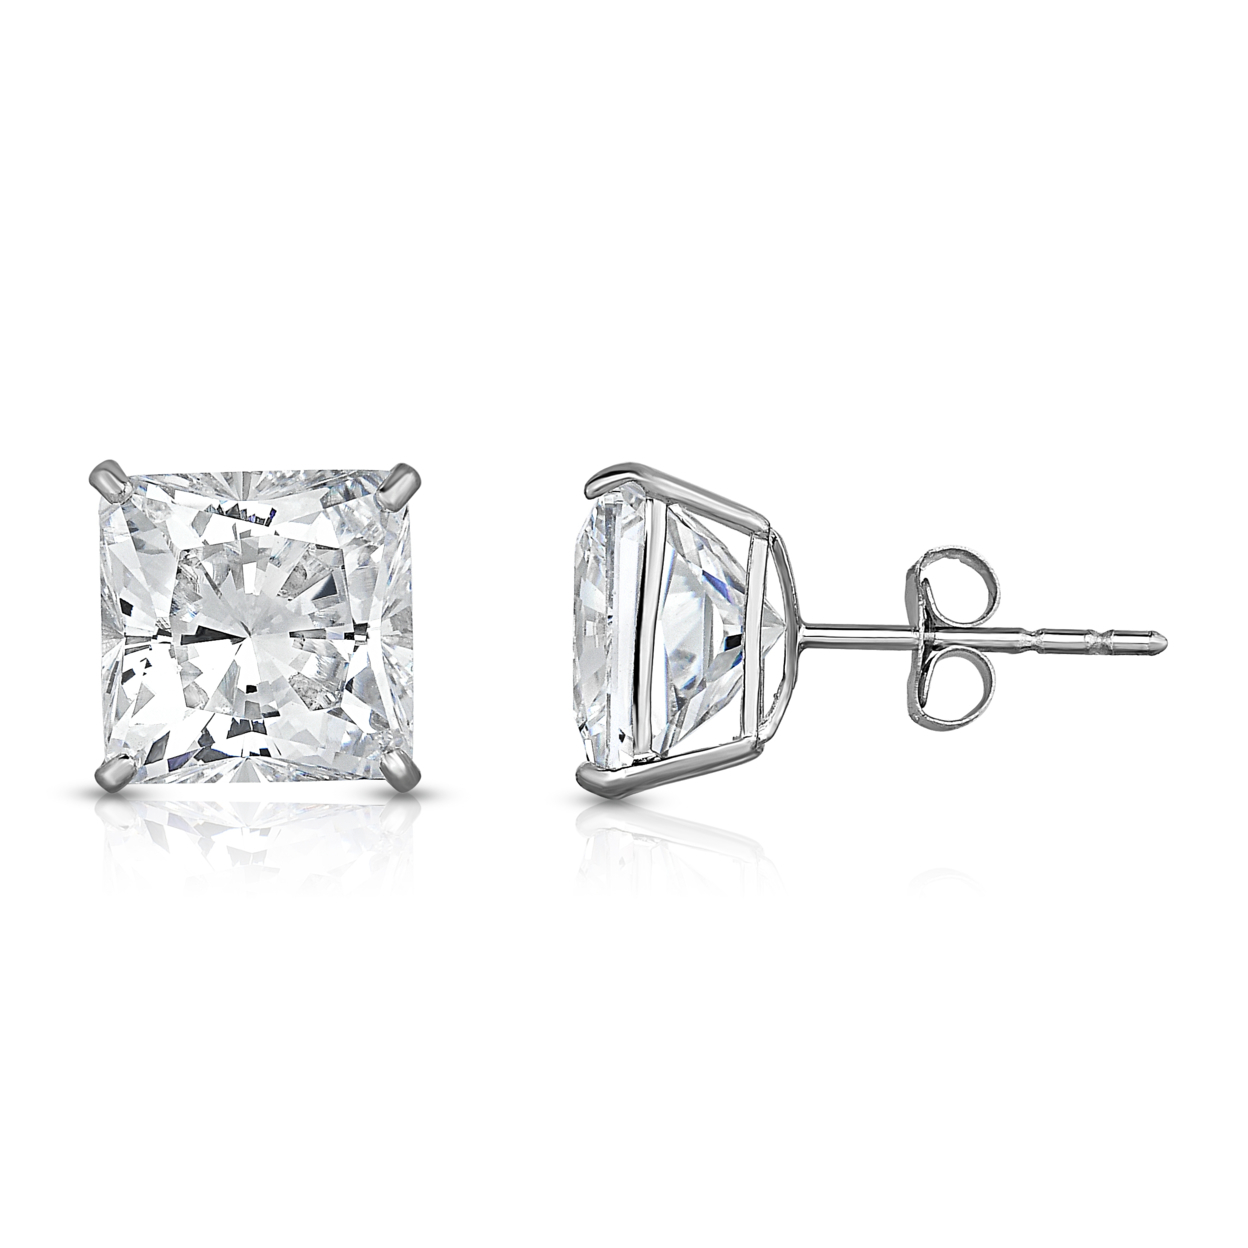 4.00 Cttw Princess Cut Swarovski Elements Crystal Studs Solid Sterling Silver